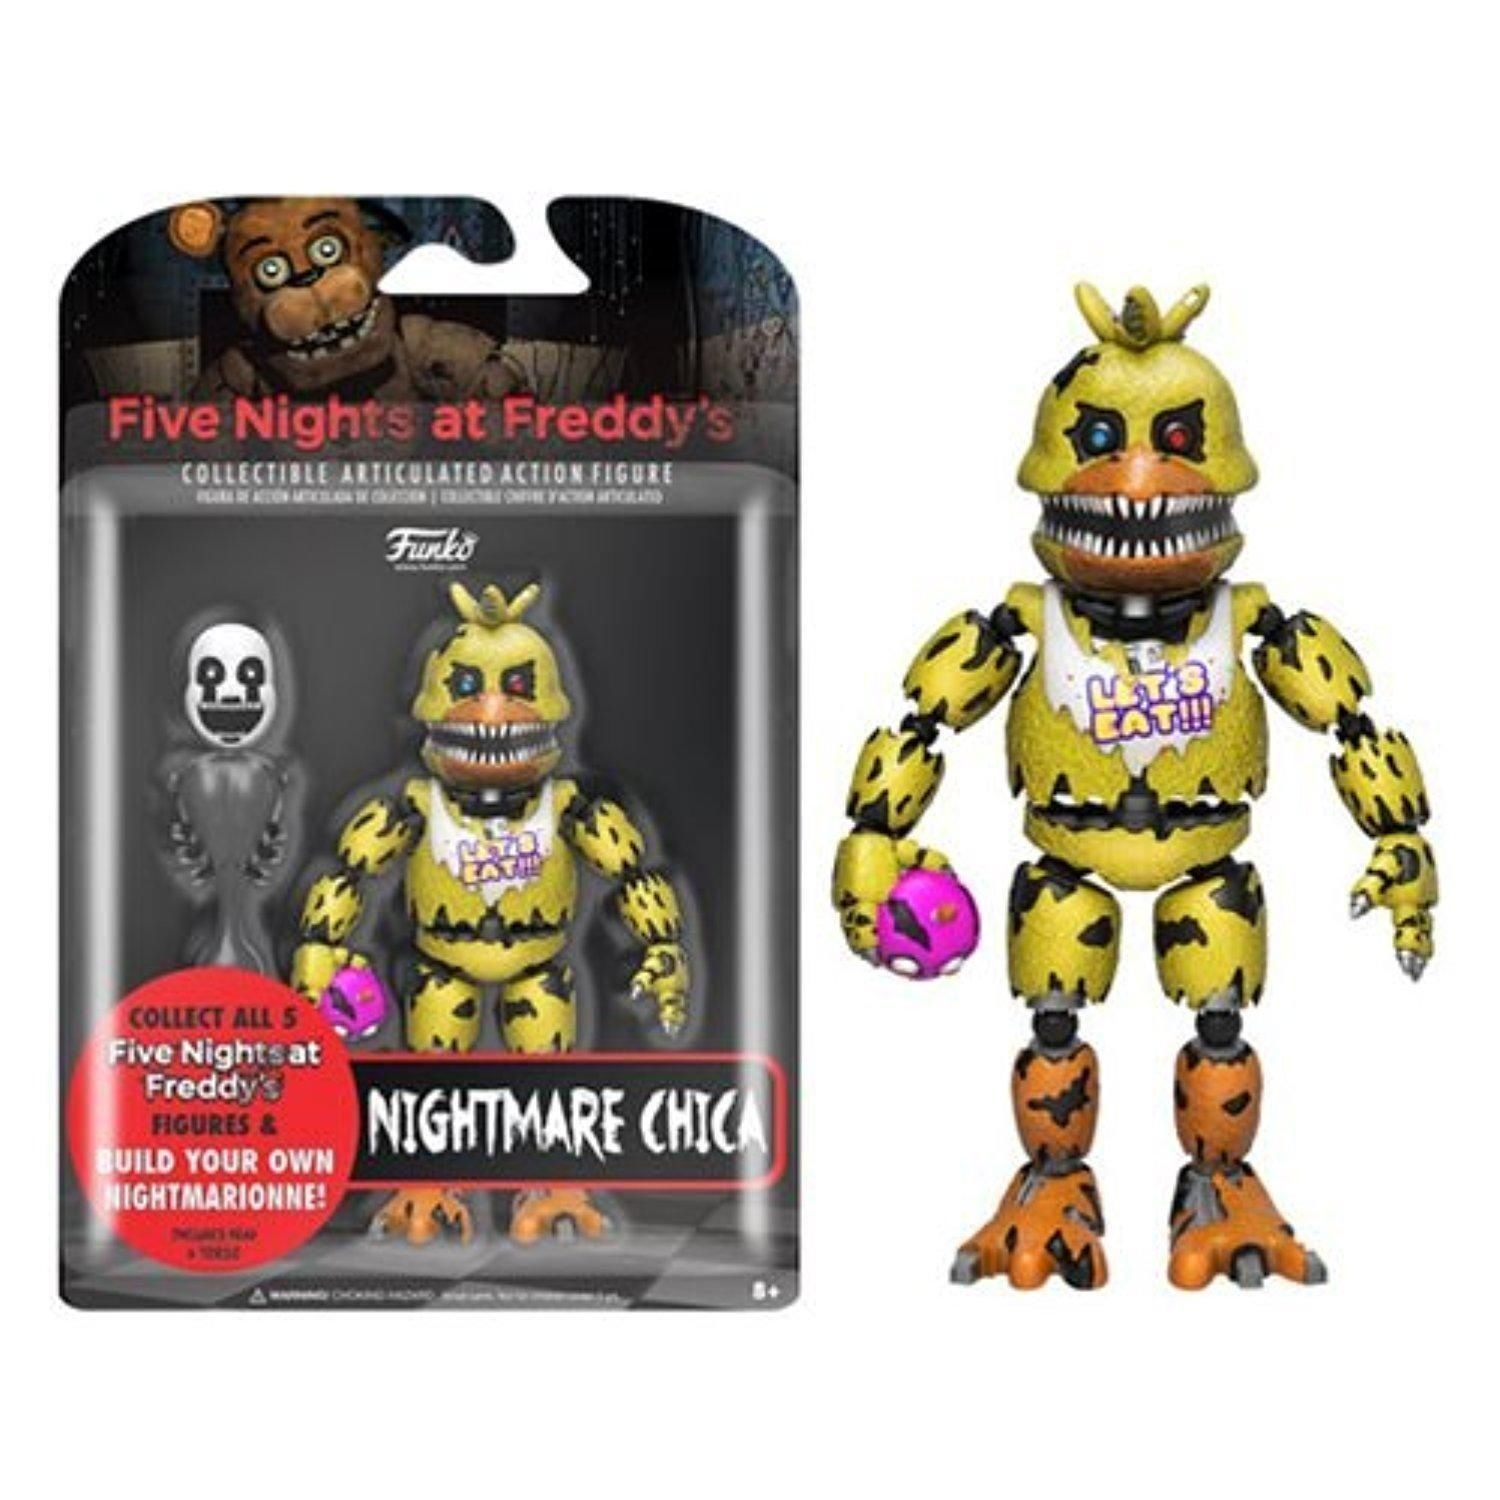 FNAF Five Nights At Freddy's NIGHTMARE CHICA Articulating